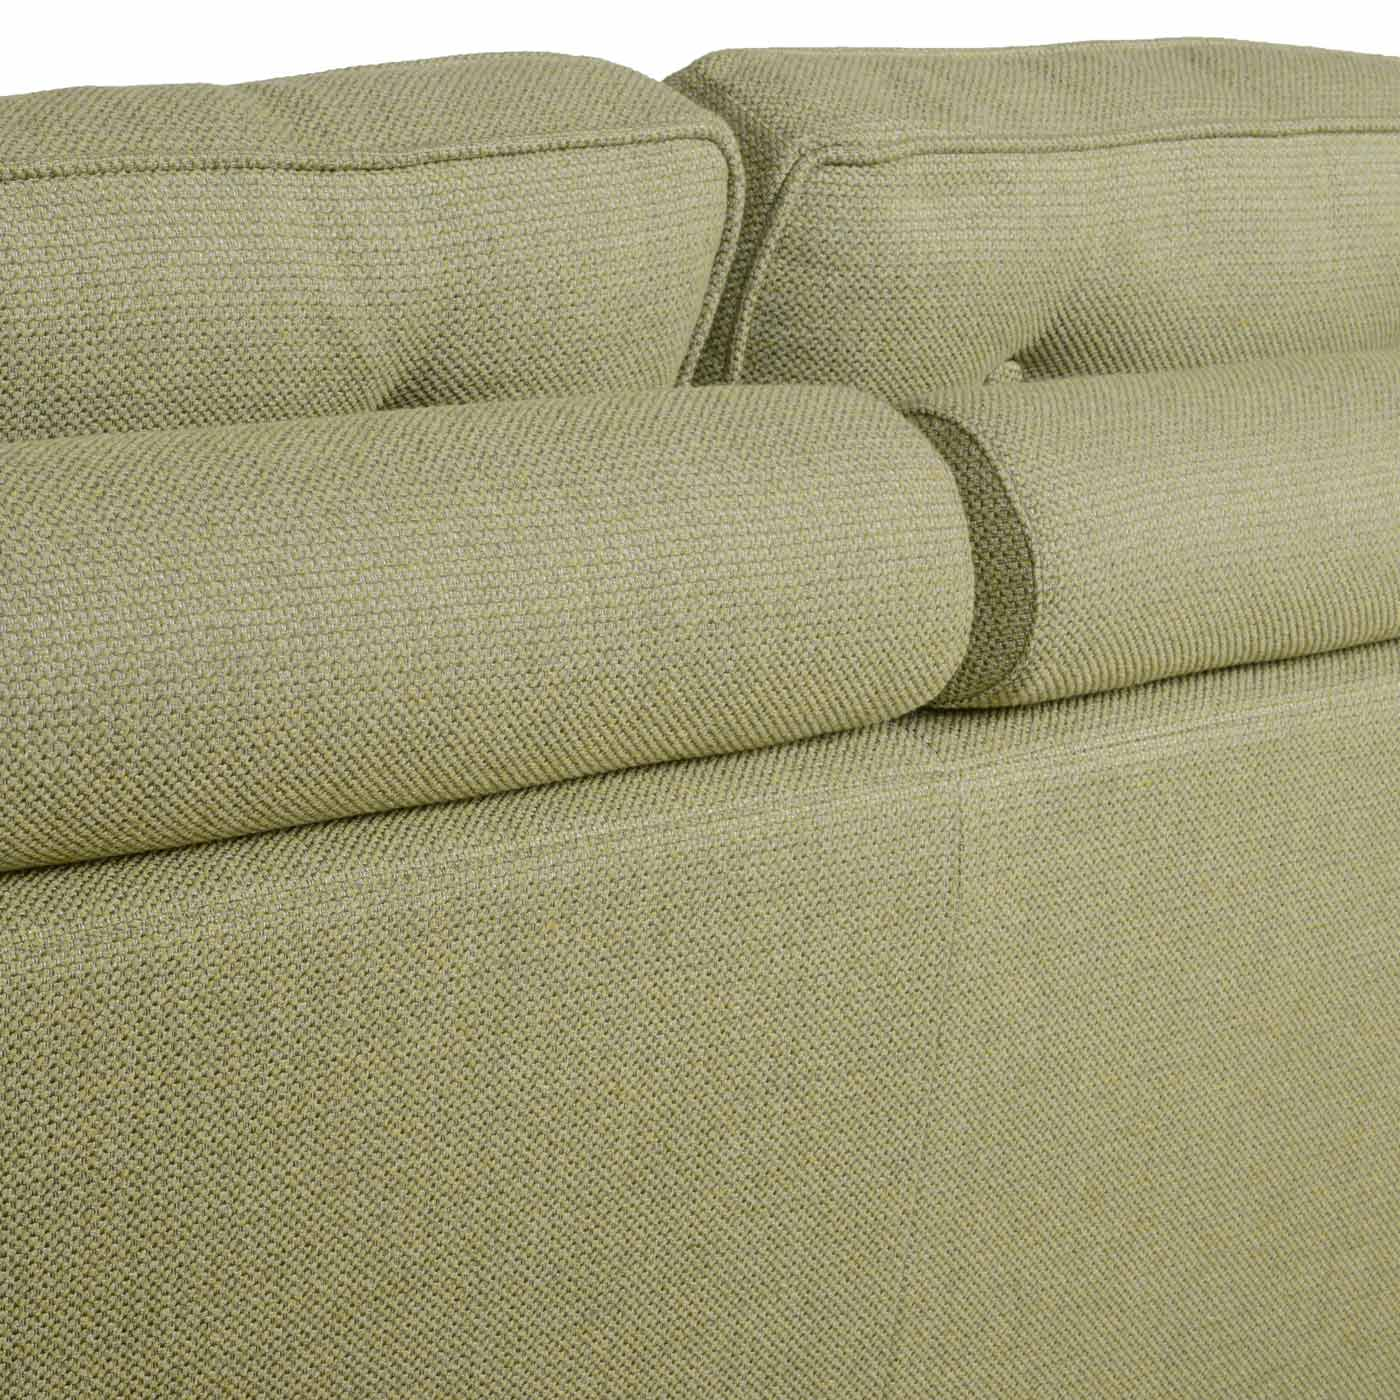 Bolster on back cushion for support